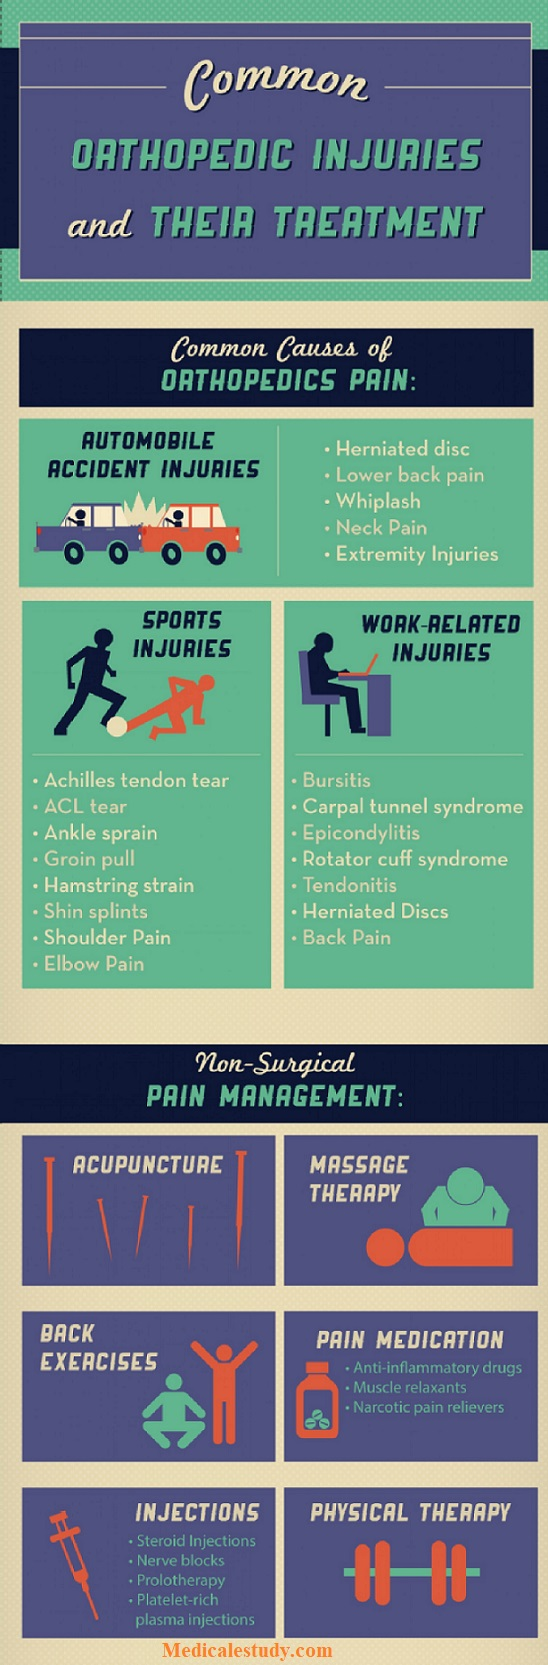 orthopedic-injuries